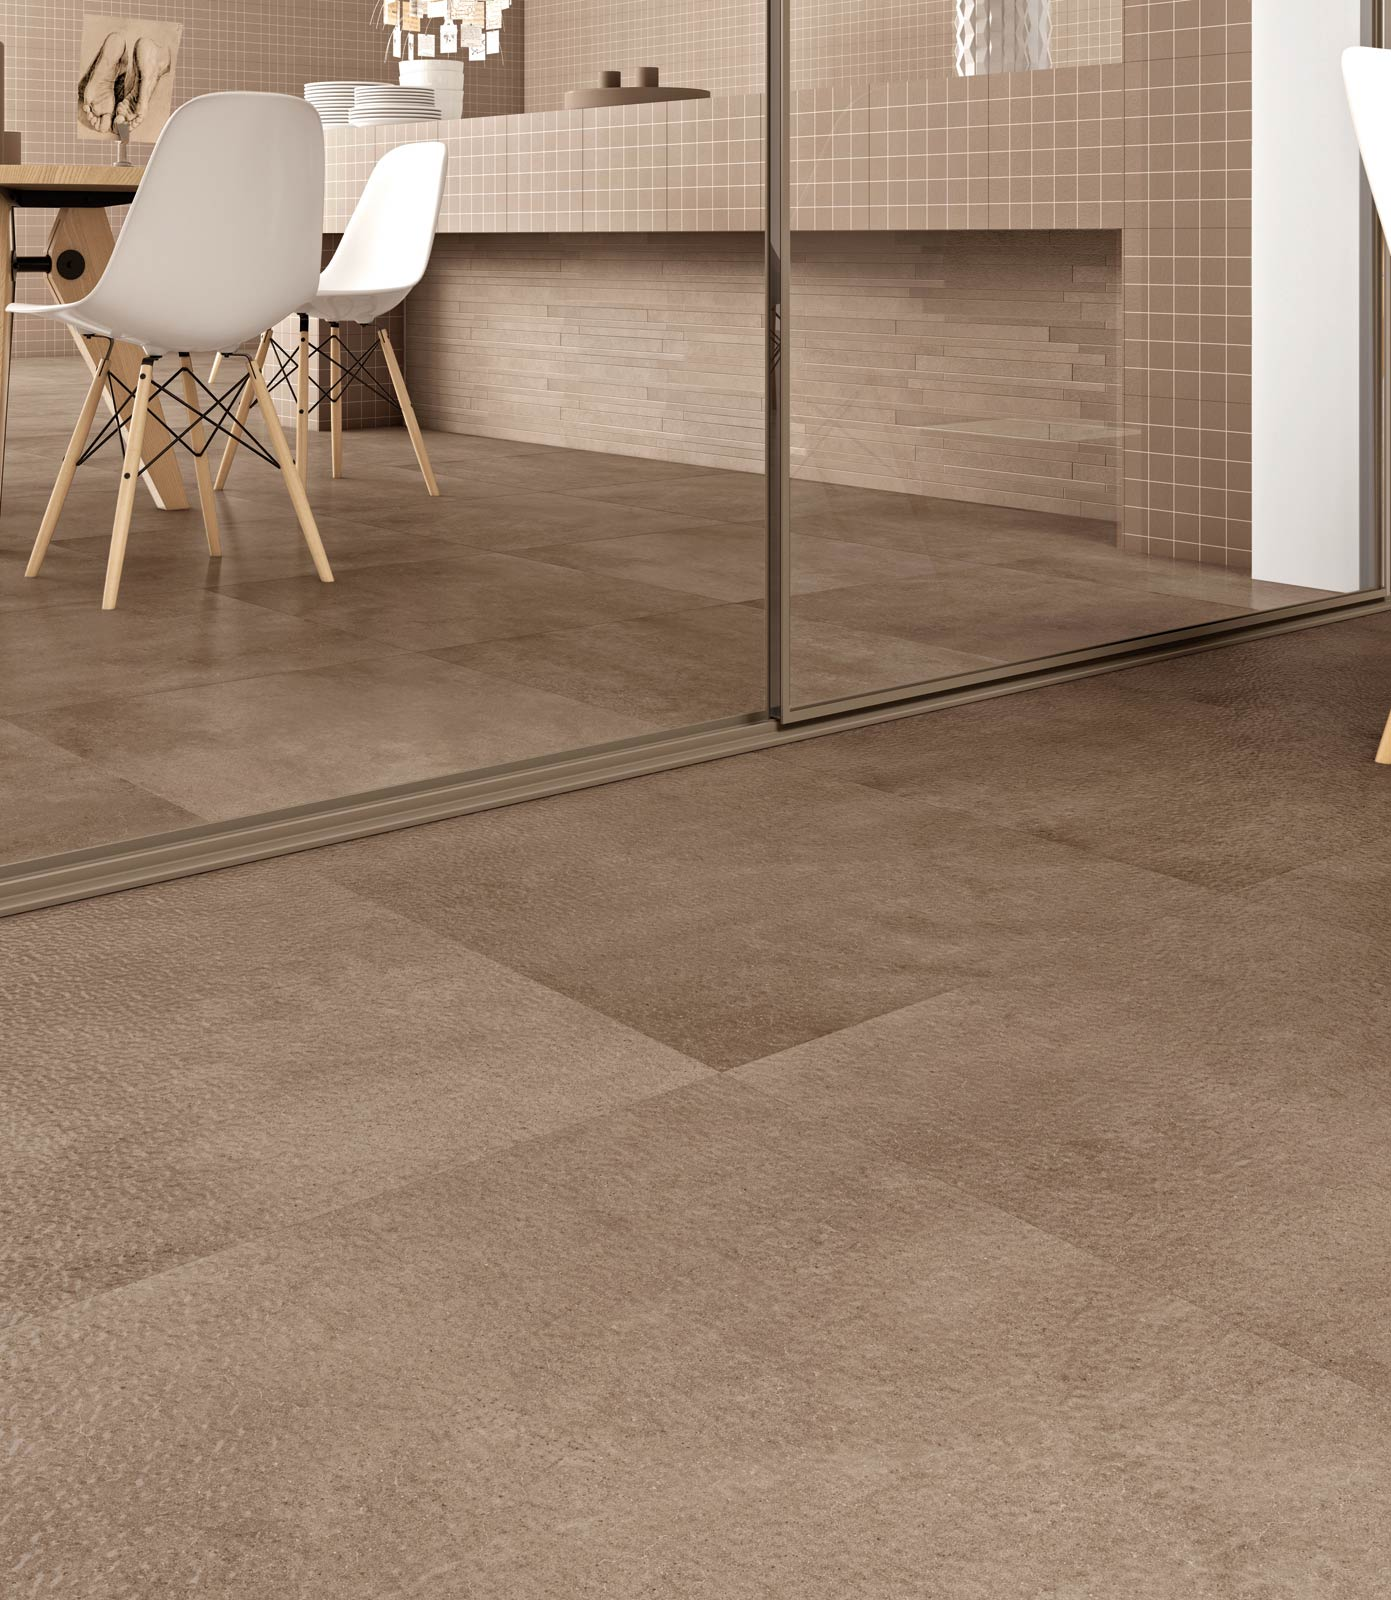 Denver indoor porcelain stoneware marazzi denver ceramic tiles marazzi4580 dailygadgetfo Gallery